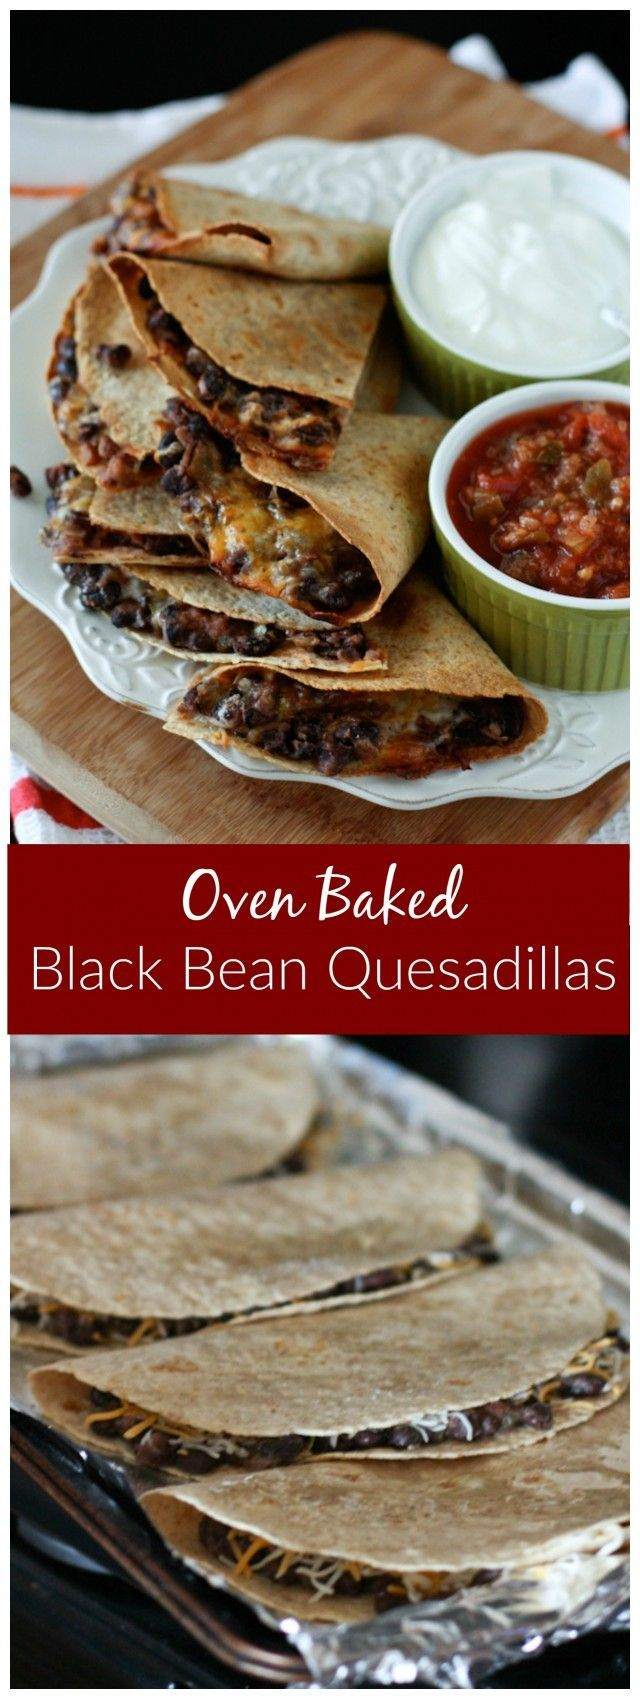 Oven Baked Black Bean and Cheese Quesadillas make a great option for family dinner on a busy night, or when you need to cook for a crowd - great for GAME DAY! Recipe via aggieskitchen.com